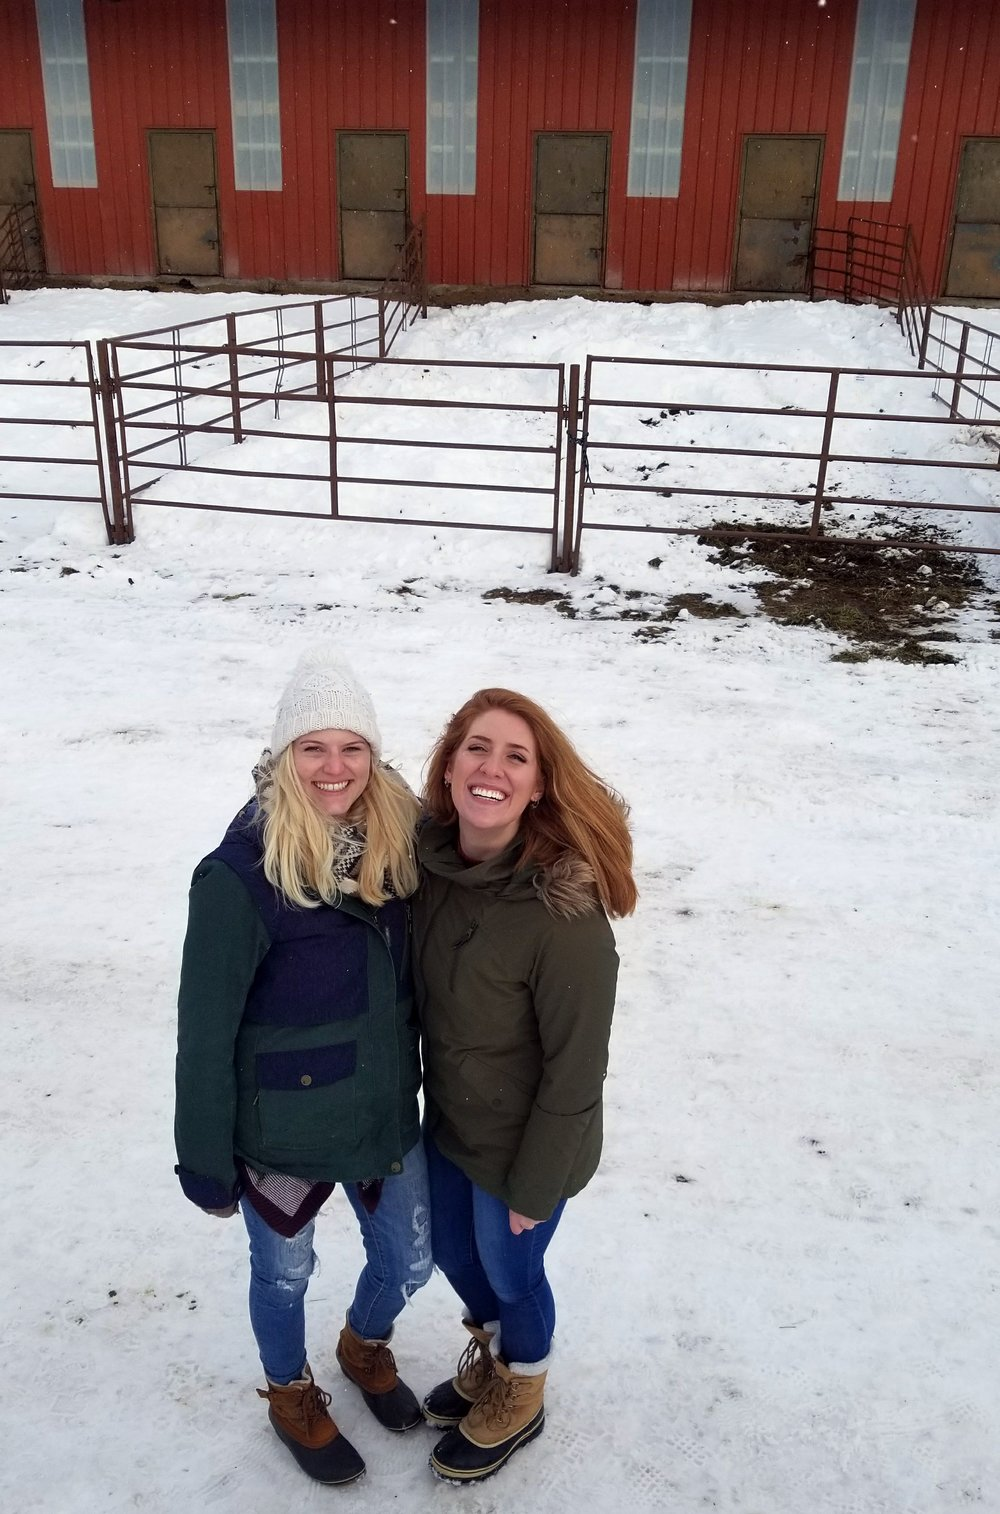 My new friend Cait and I in Big Sky attending ski joring. It was fun but cold!